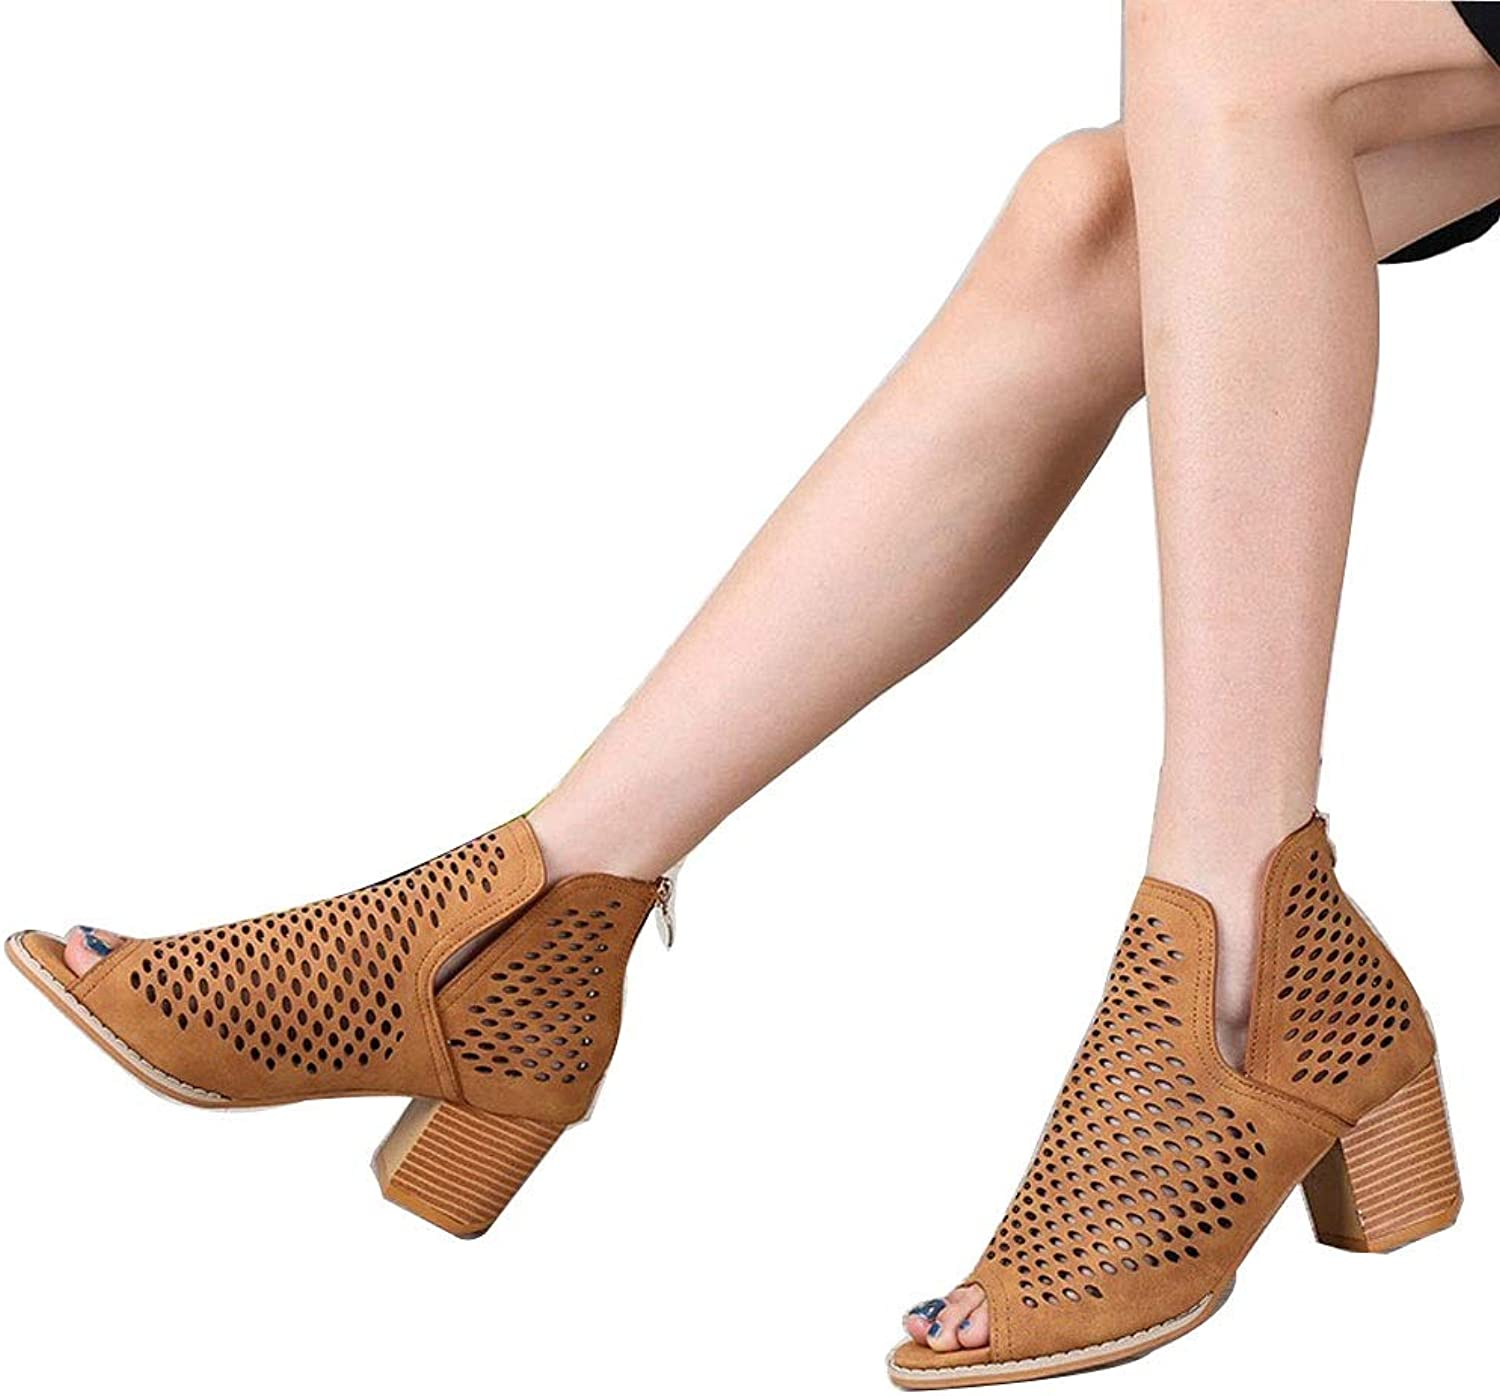 Women's High-Heeled Sandals Fish Mouth Mesh Thick with High Heels Fashion Hollow Roman Women's Sandals (color   Yellow, Size   36)